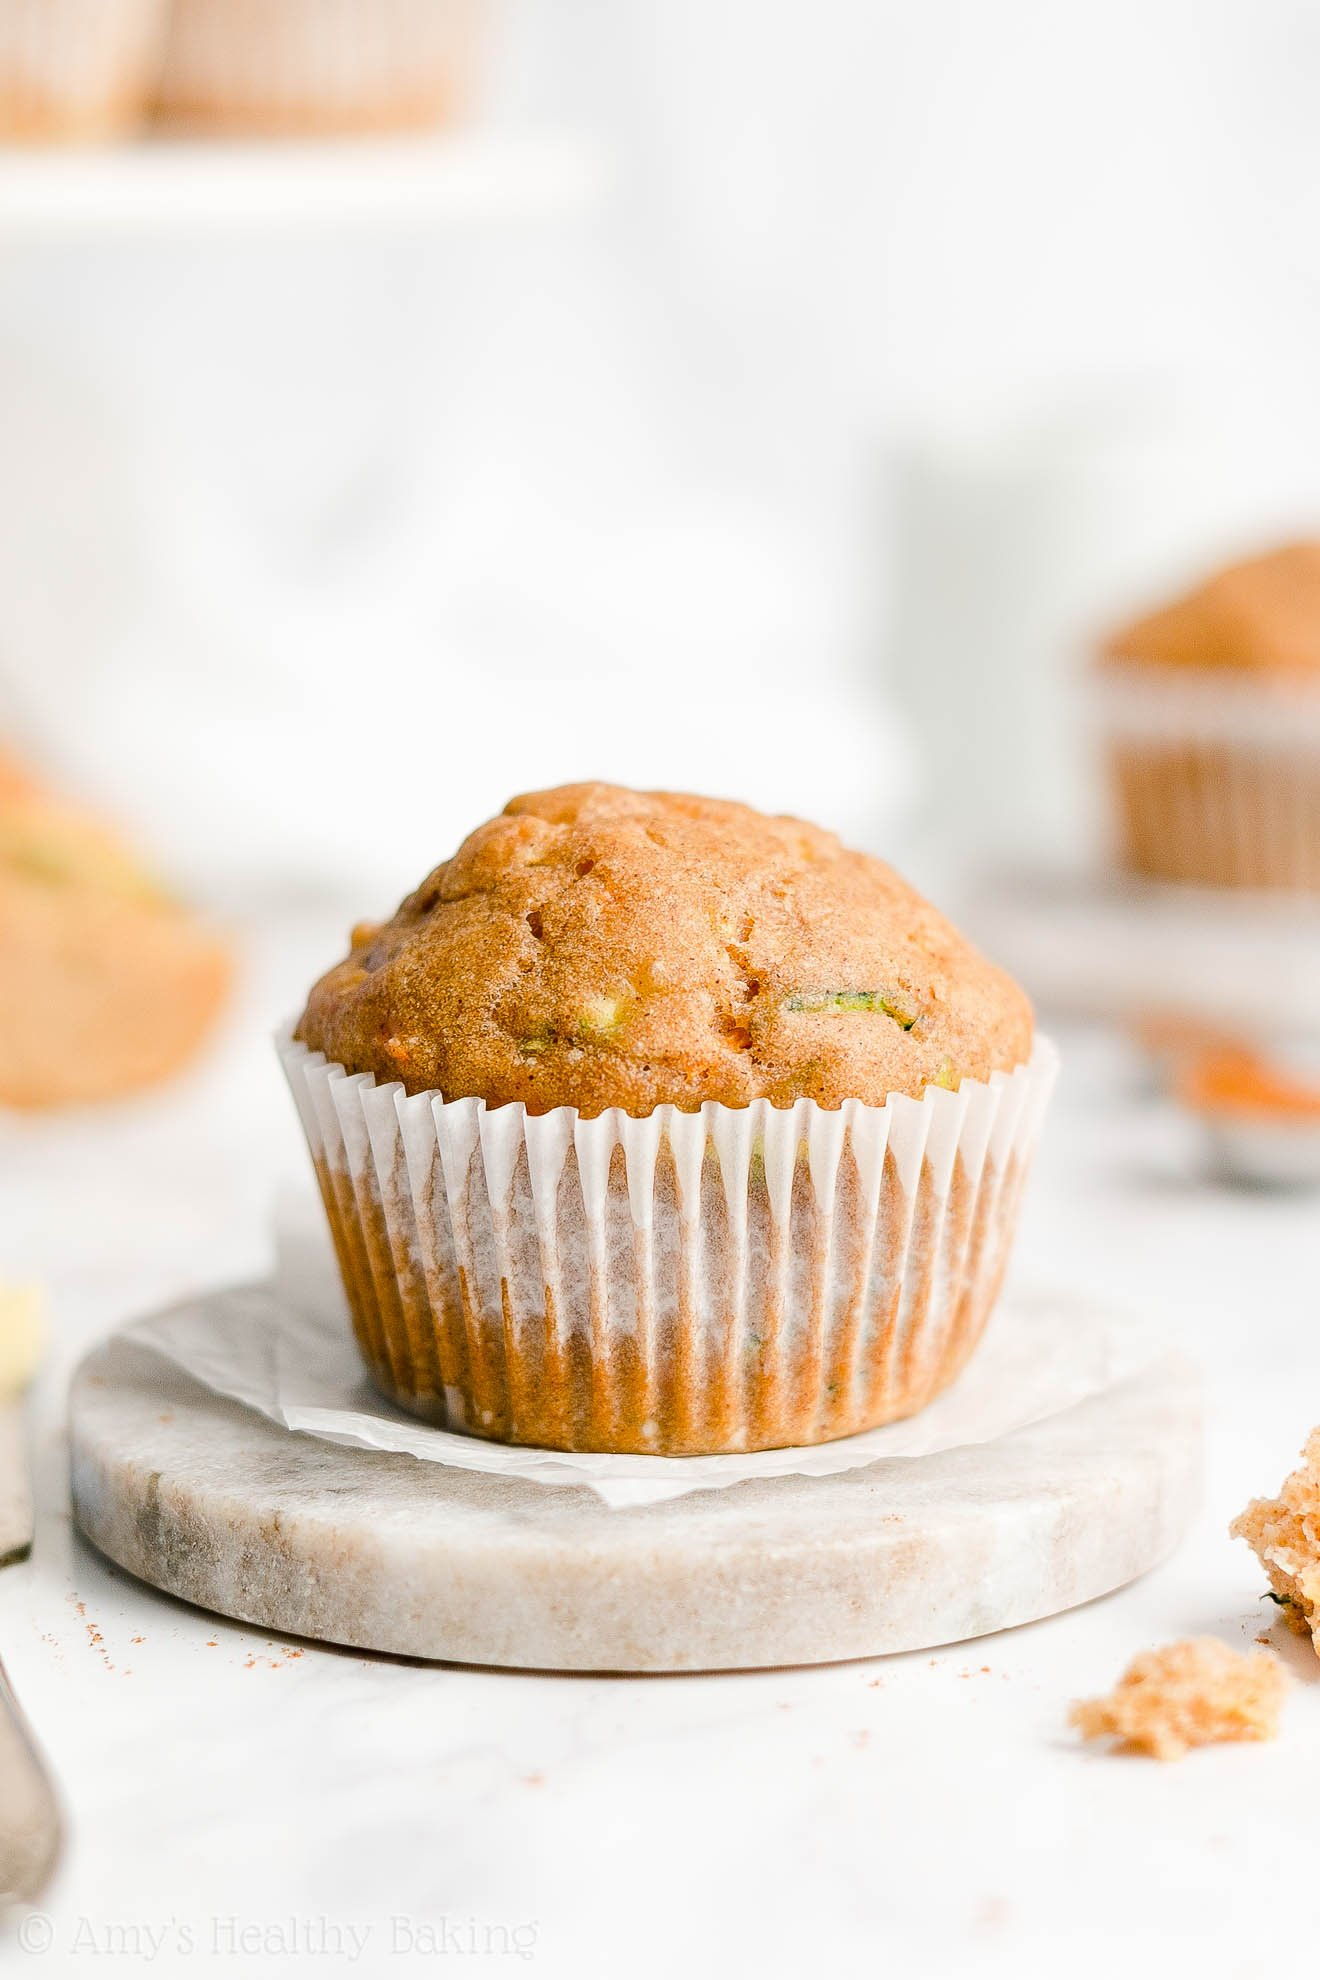 Best Easy Healthy Clean Eating Sugar Free Spiced Carrot Zucchini Muffins